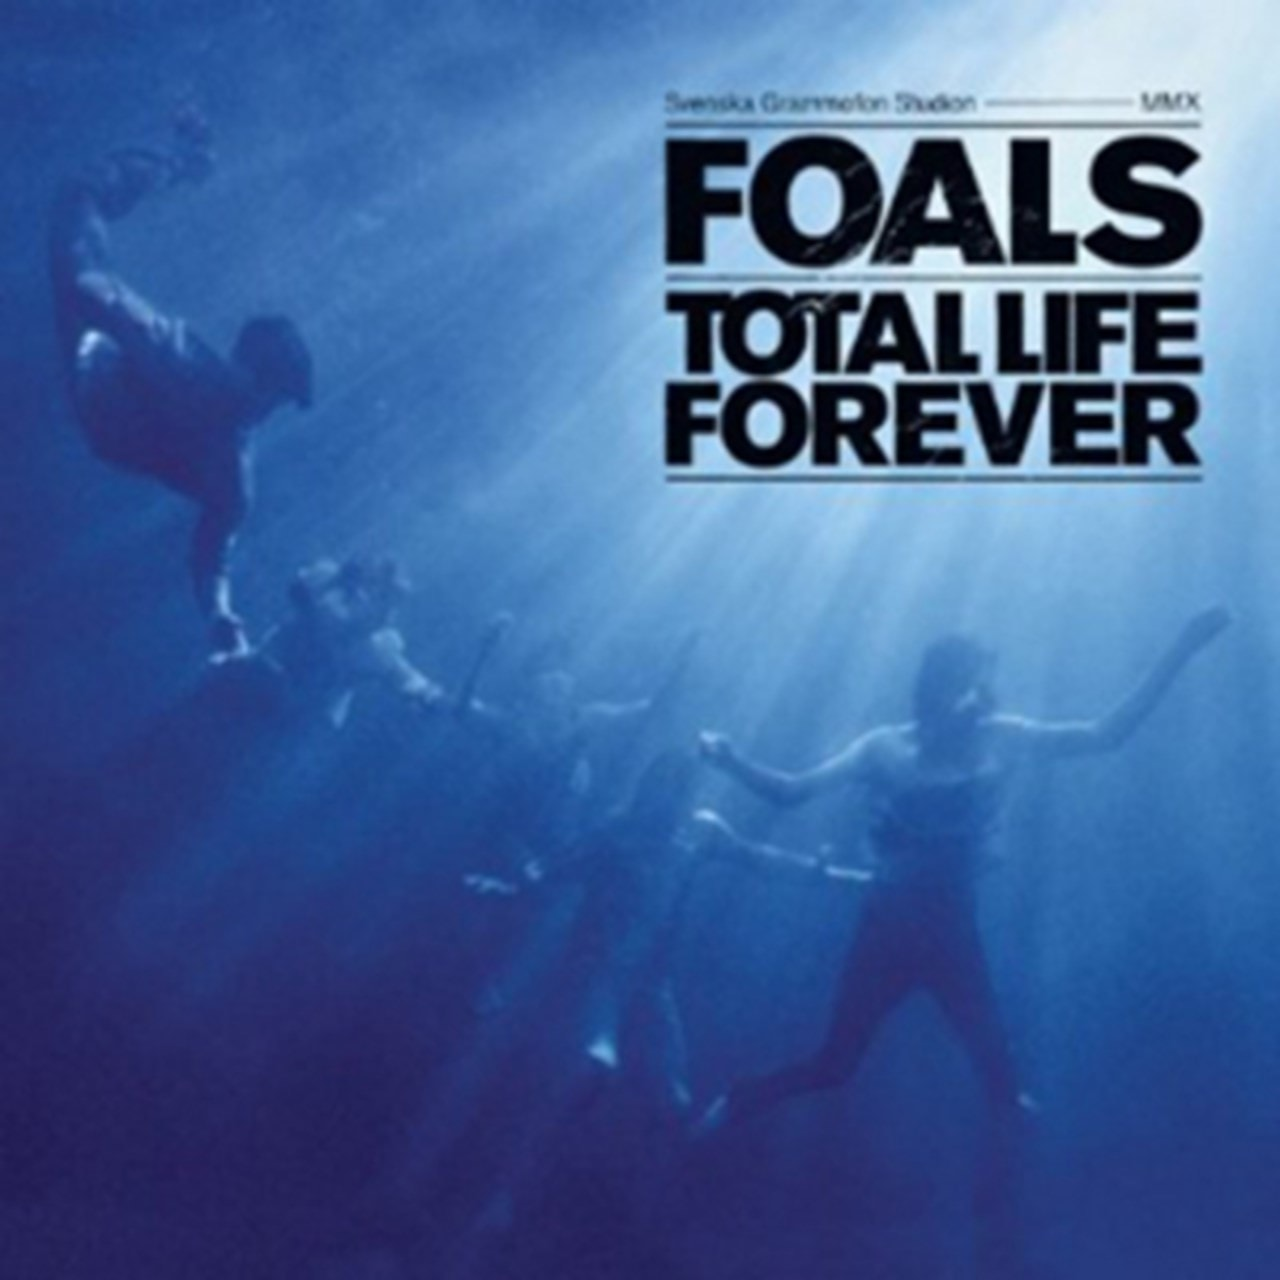 Total Life Forever - 1